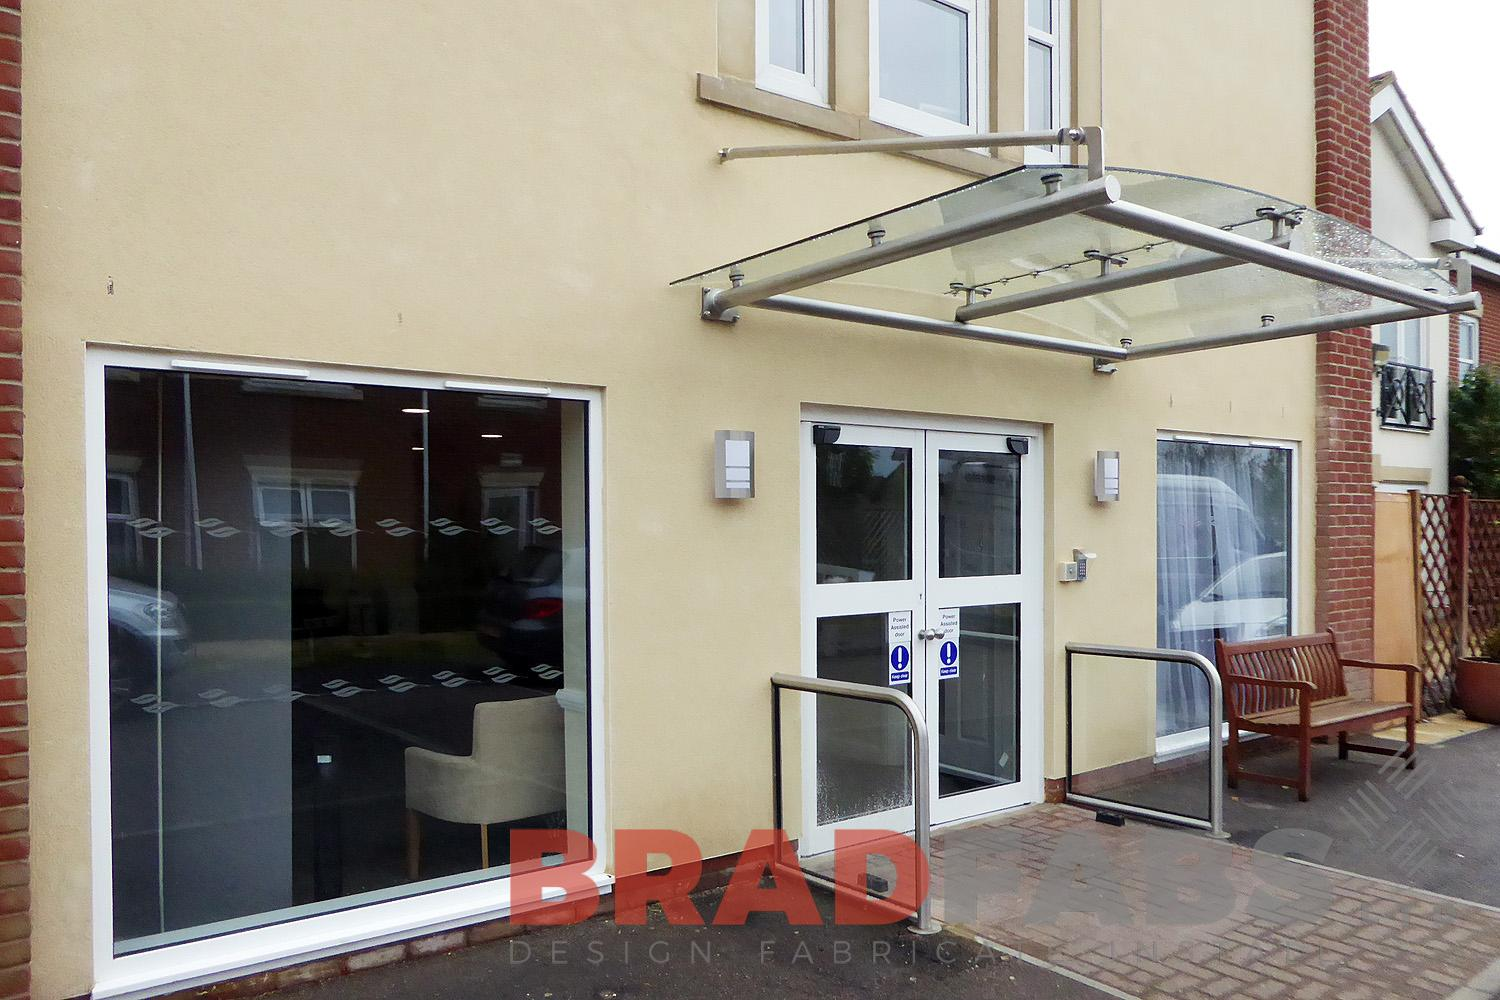 large curved glass and steel panel canopy in an entrance installed in nursing home